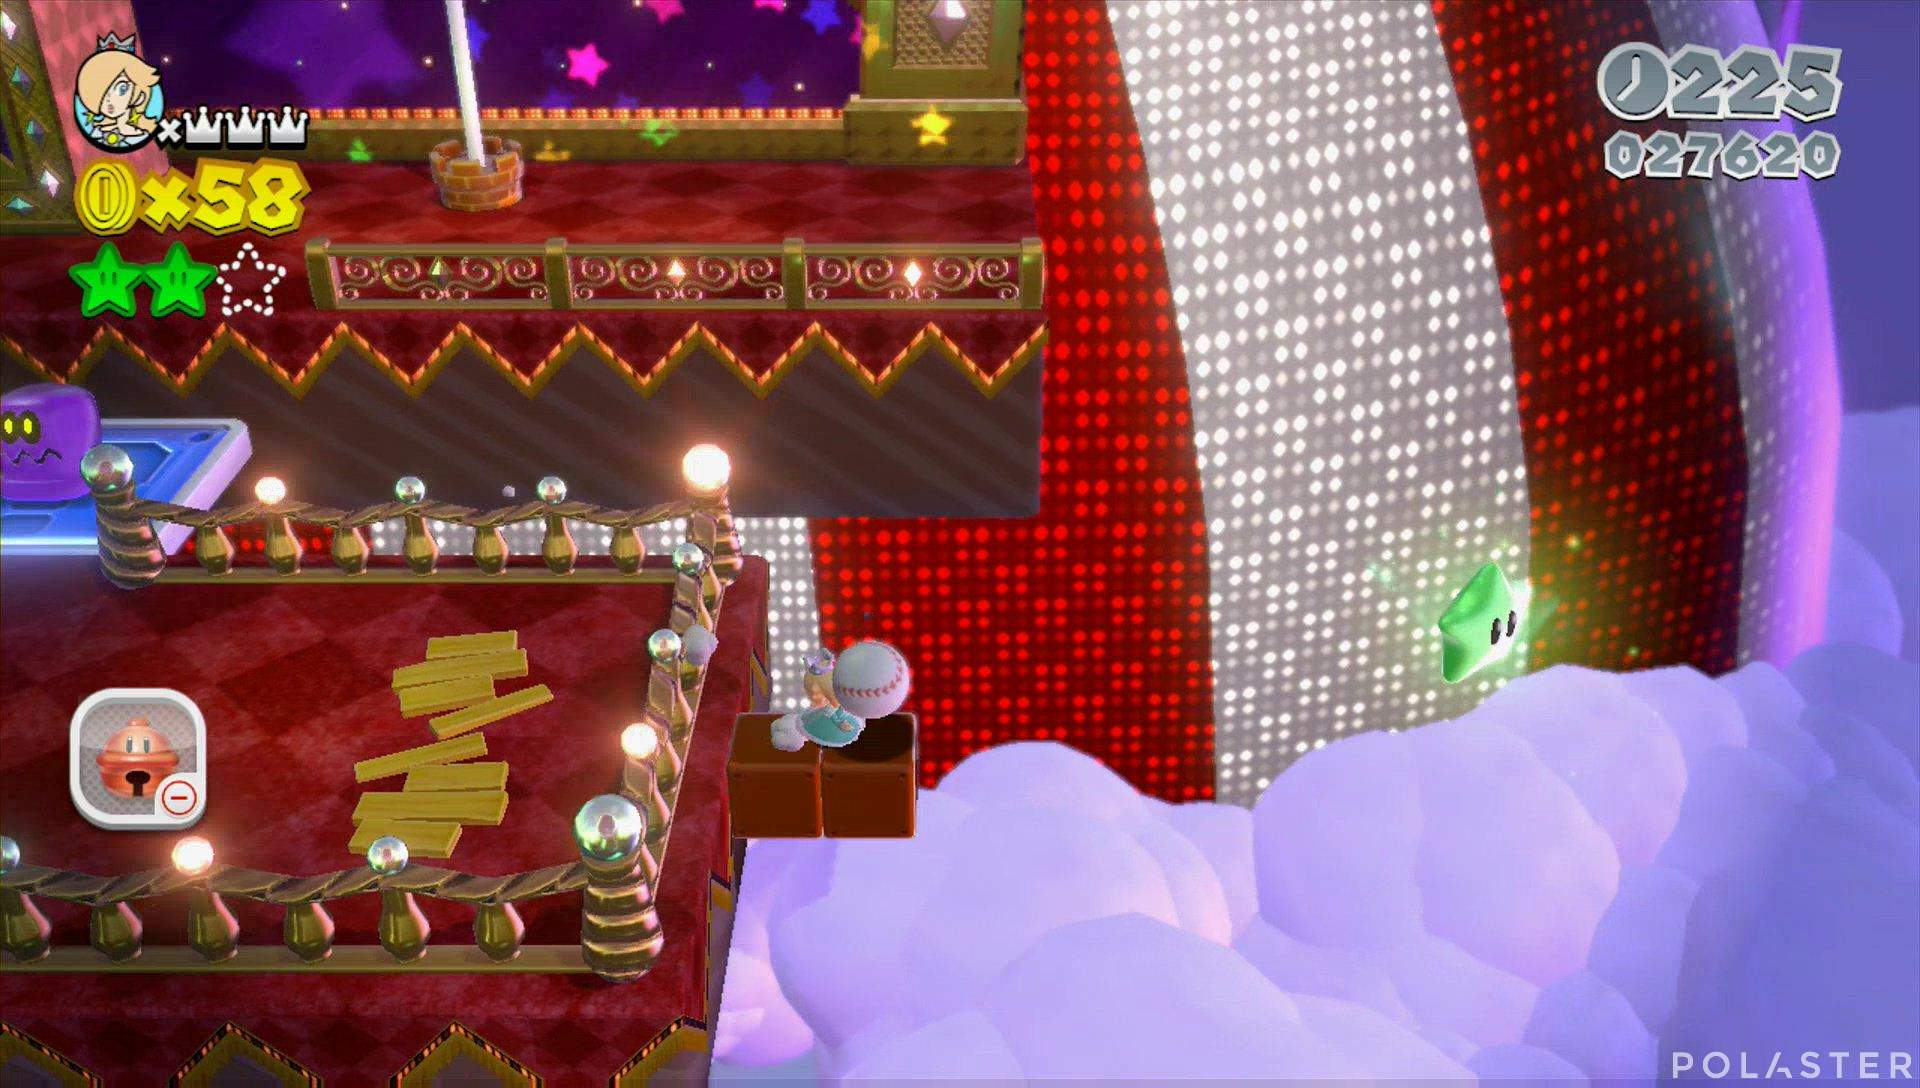 Super Mario 3D World Mundo Flor-1 Estrella 3